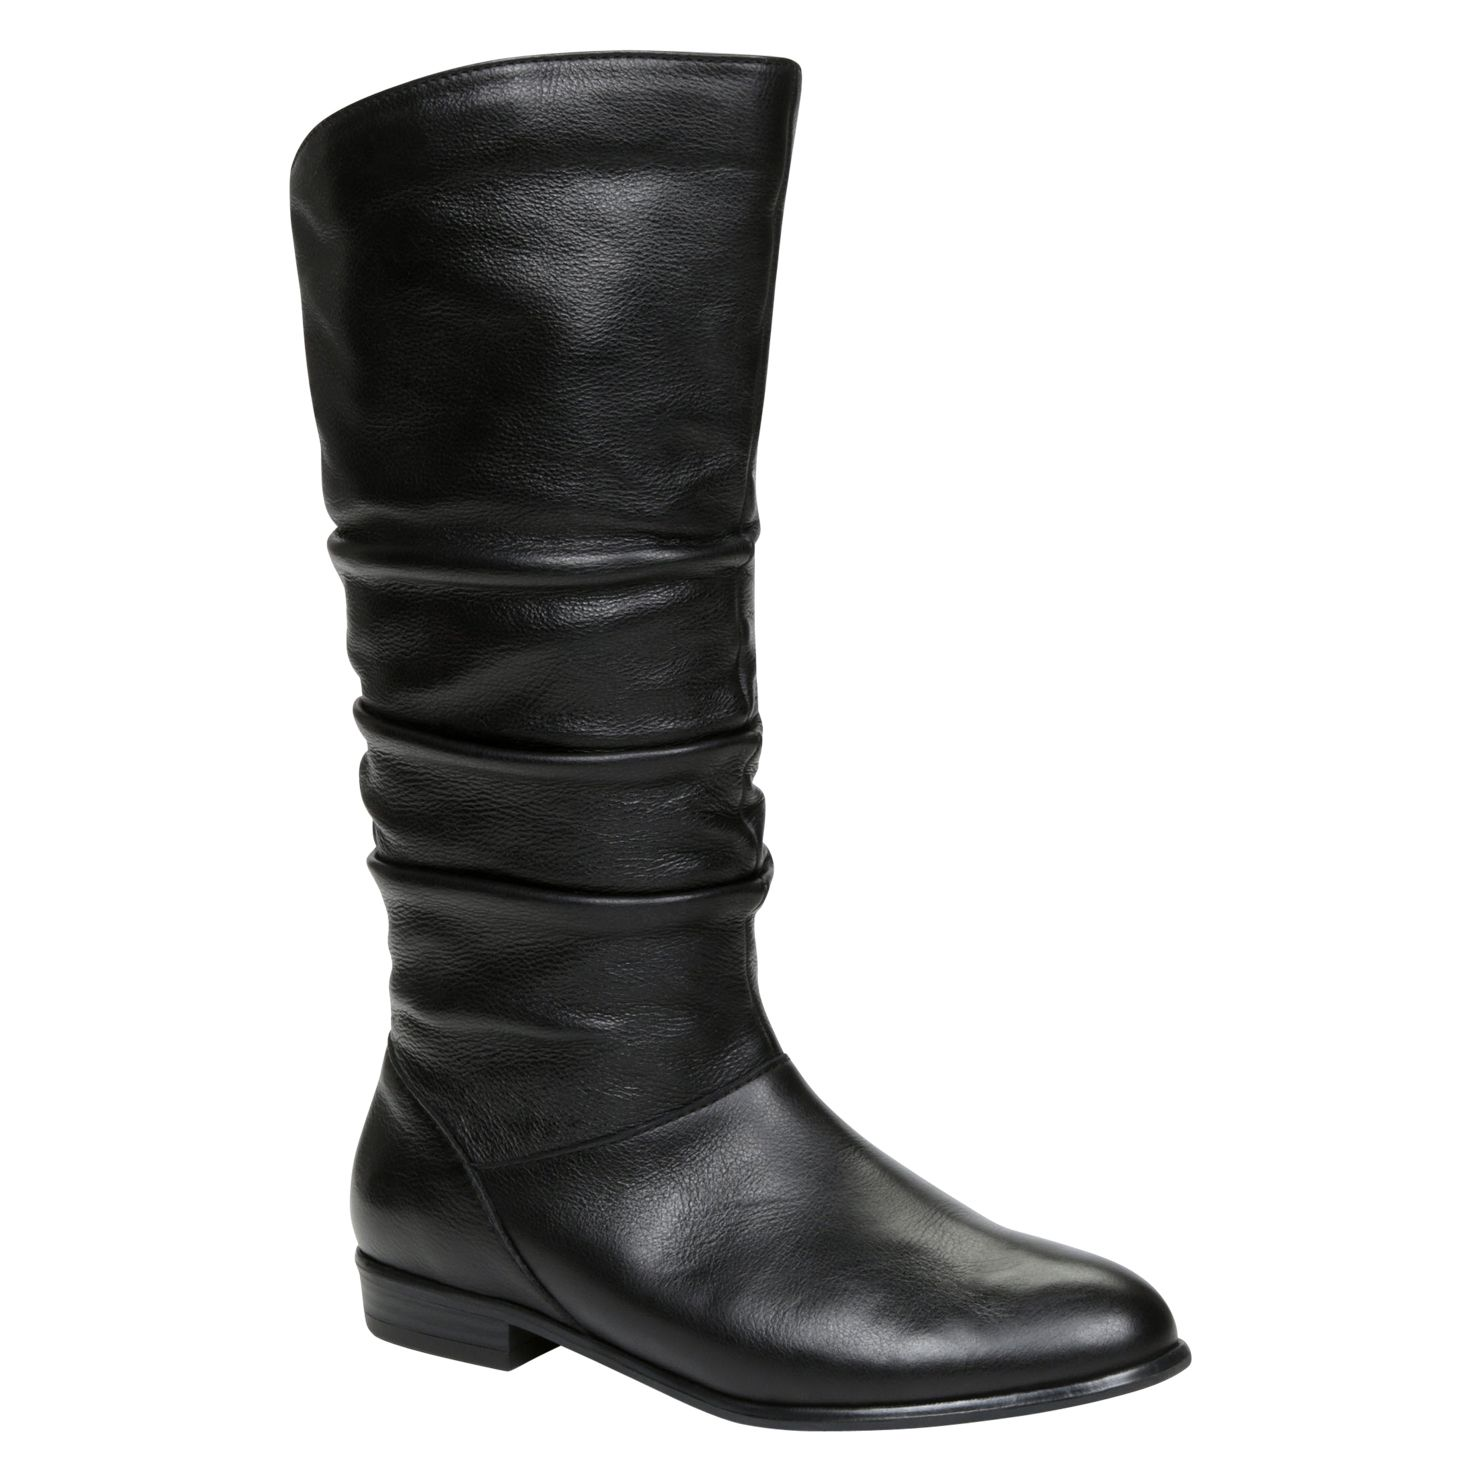 Althea round toe knee boots